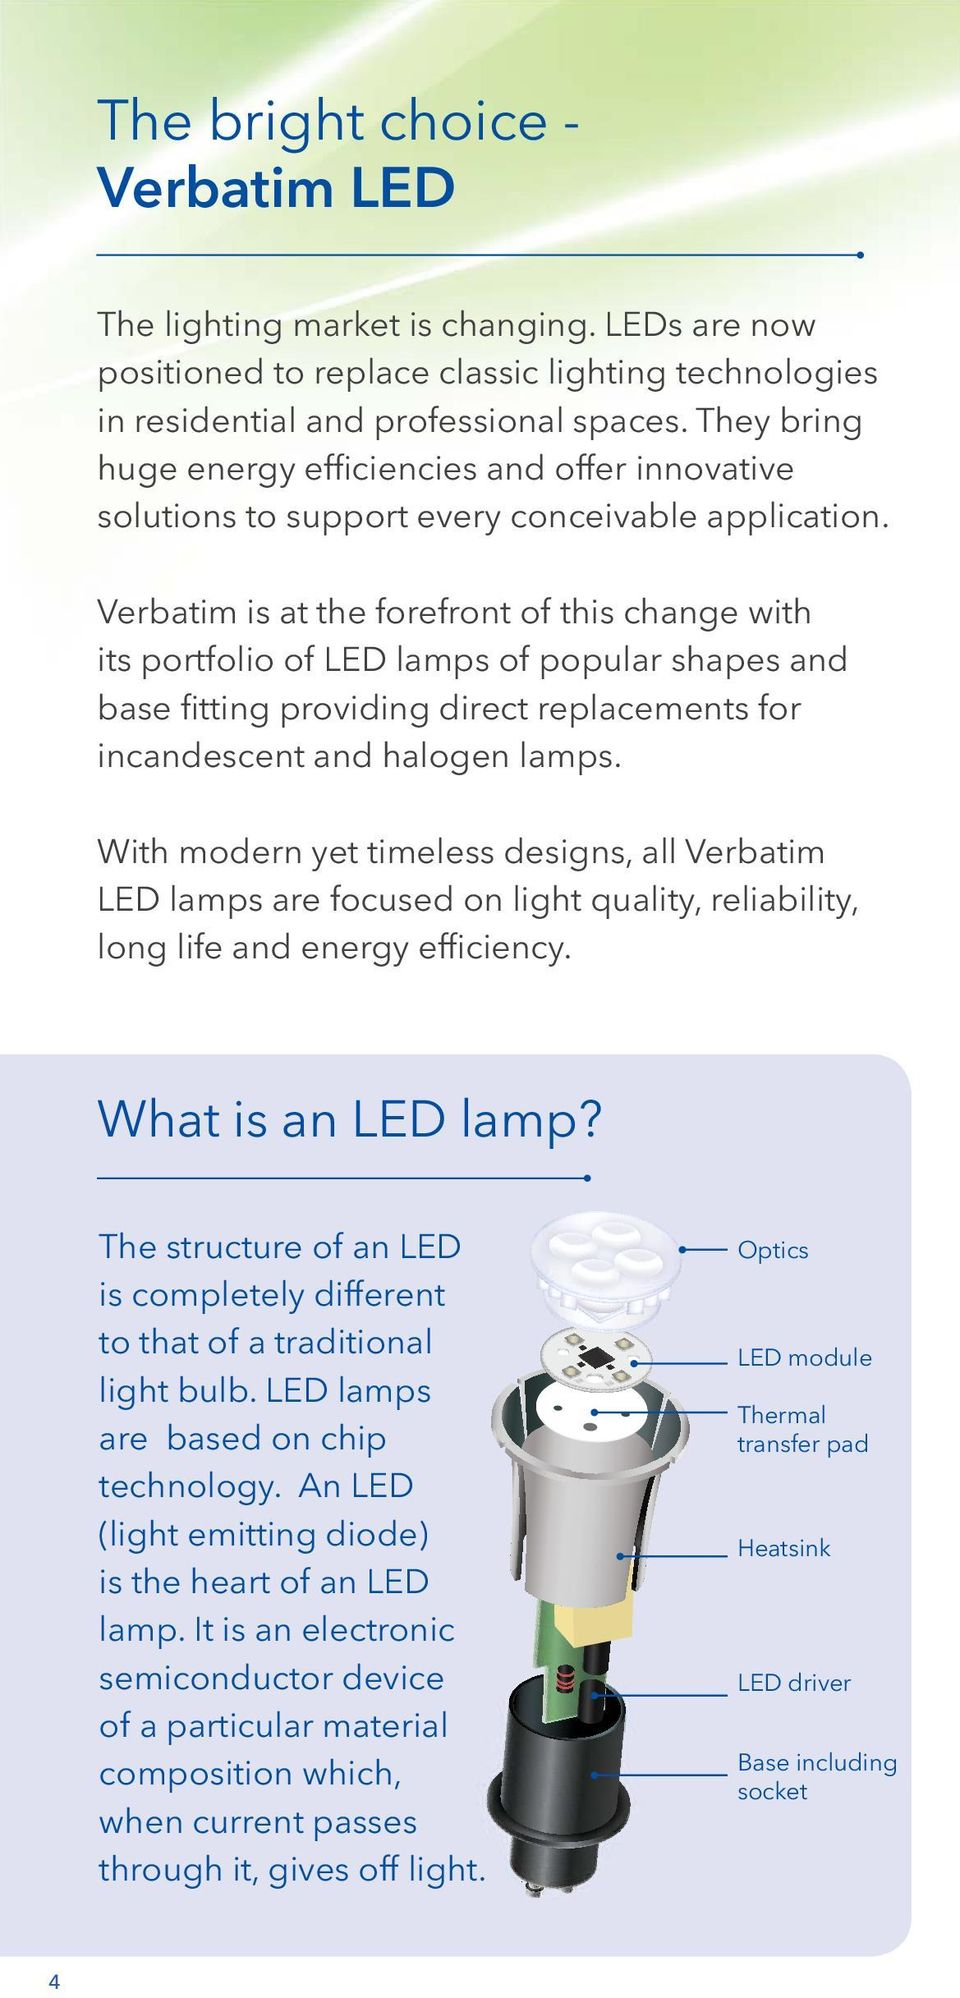 Verbatim is at the forefront of this change with its portfolio of LED lamps of popular shapes and base fitting providing direct replacements for incandescent and halogen lamps.